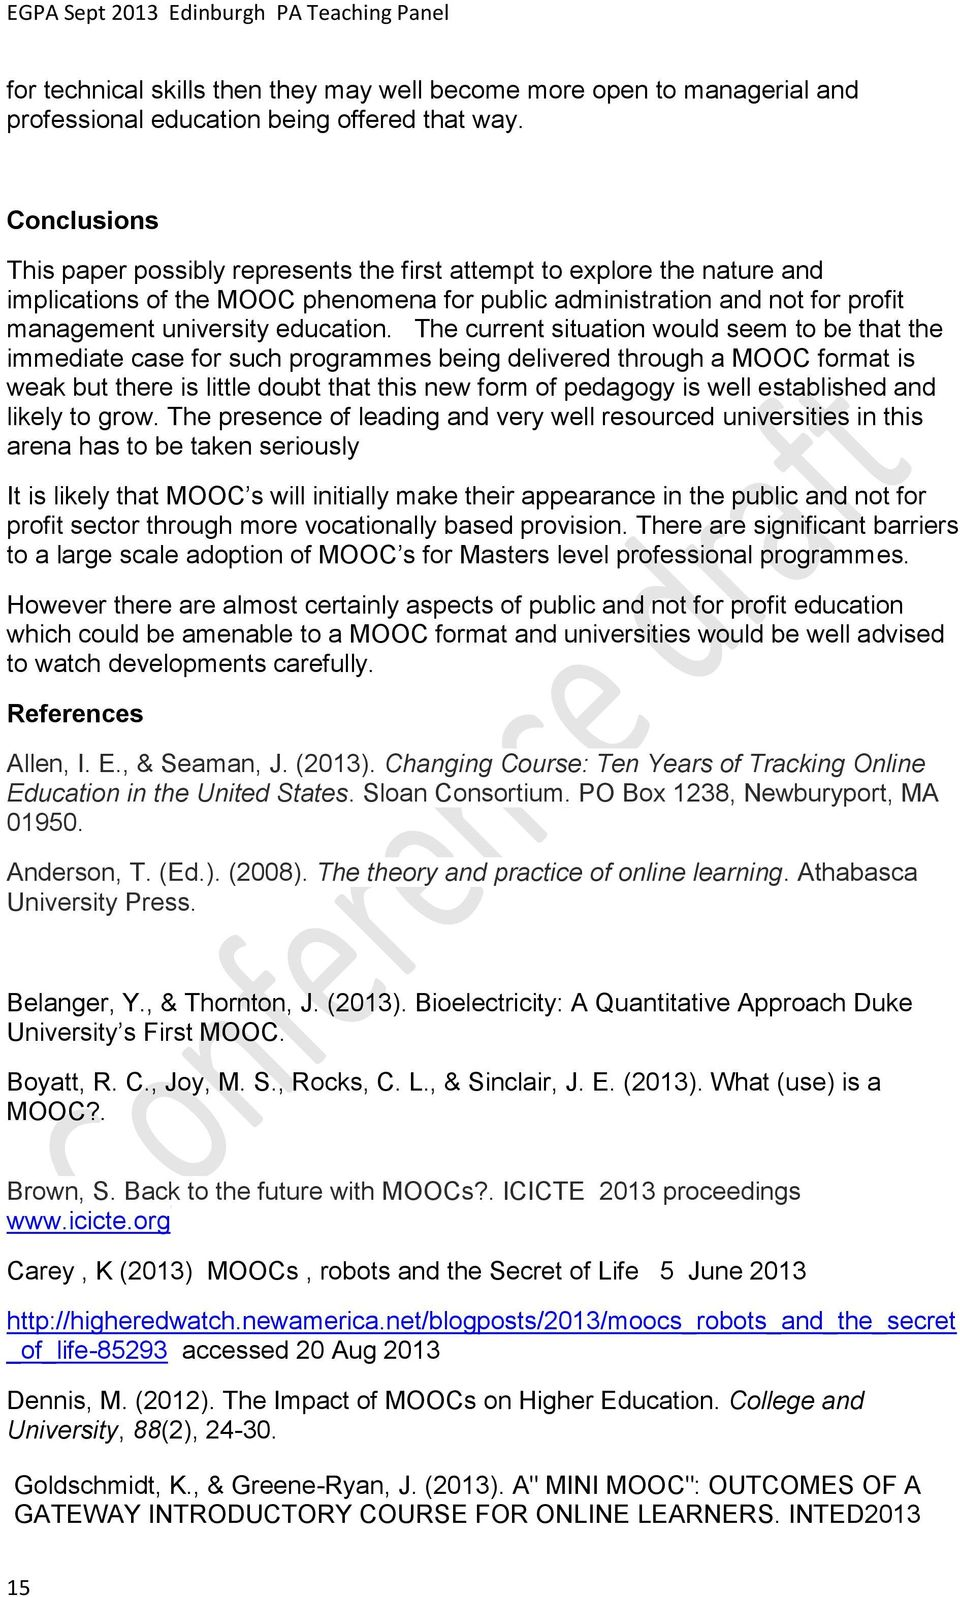 The current situation would seem to be that the immediate case for such programmes being delivered through a MOOC format is weak but there is little doubt that this new form of pedagogy is well